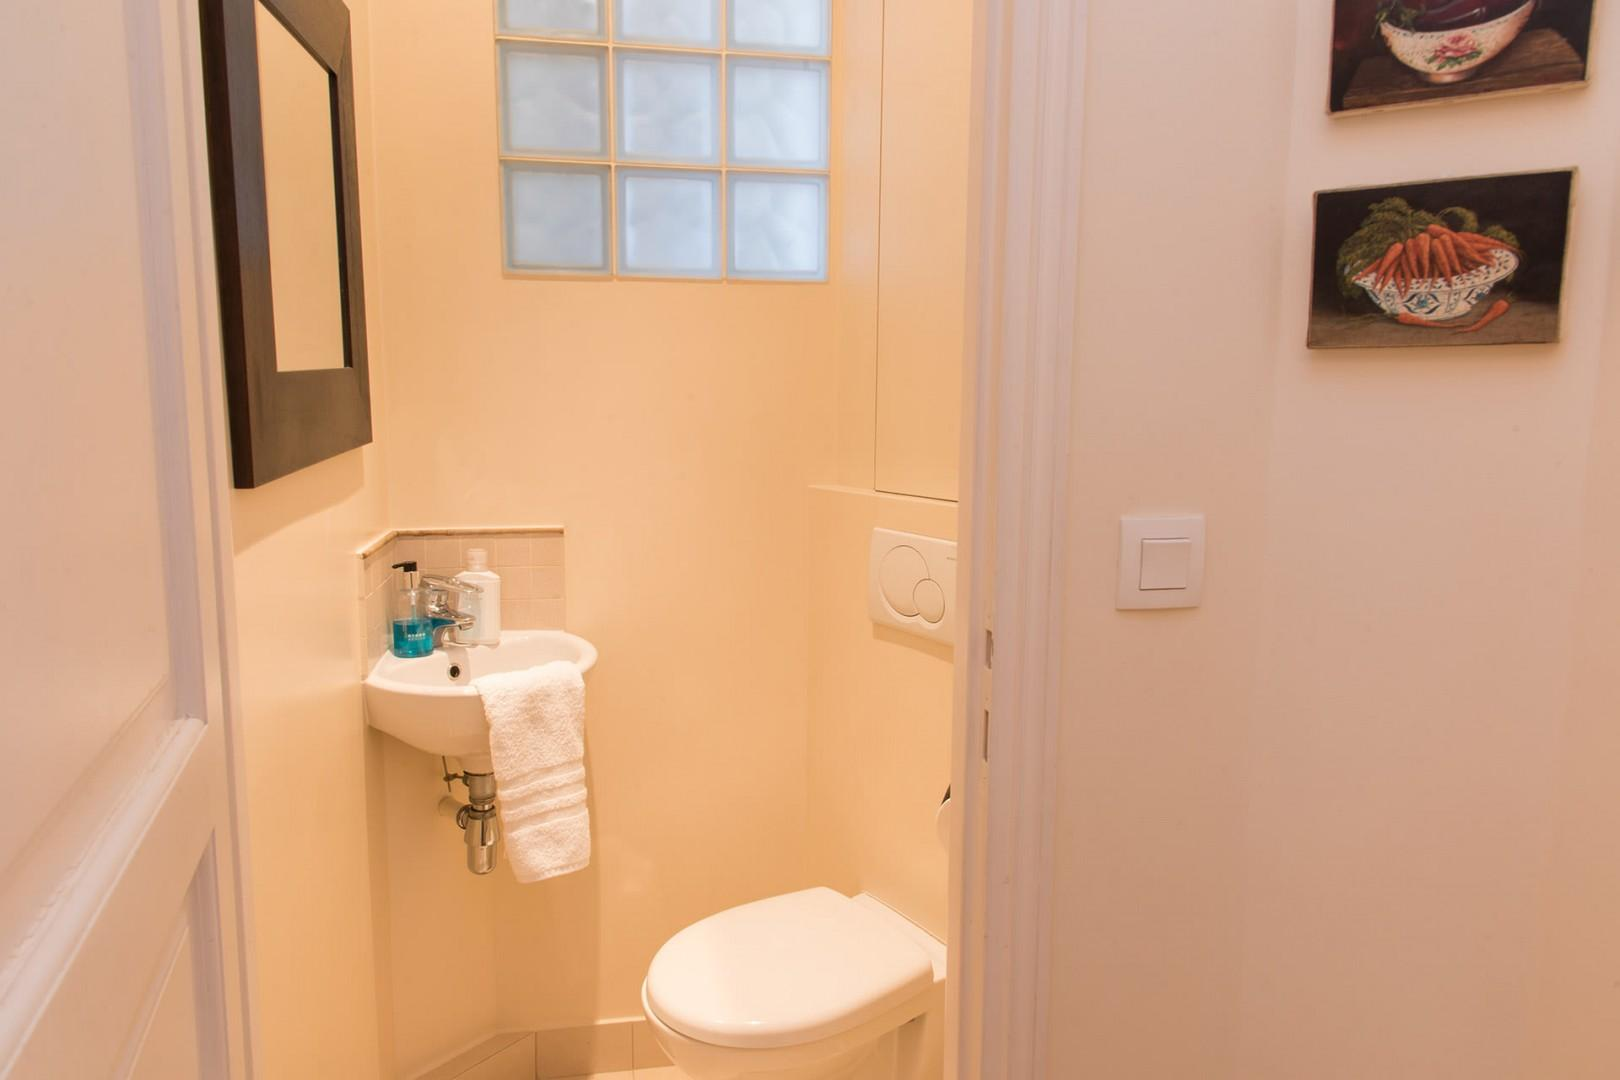 For added privacy, there is a separate half bath with toilet and sink.